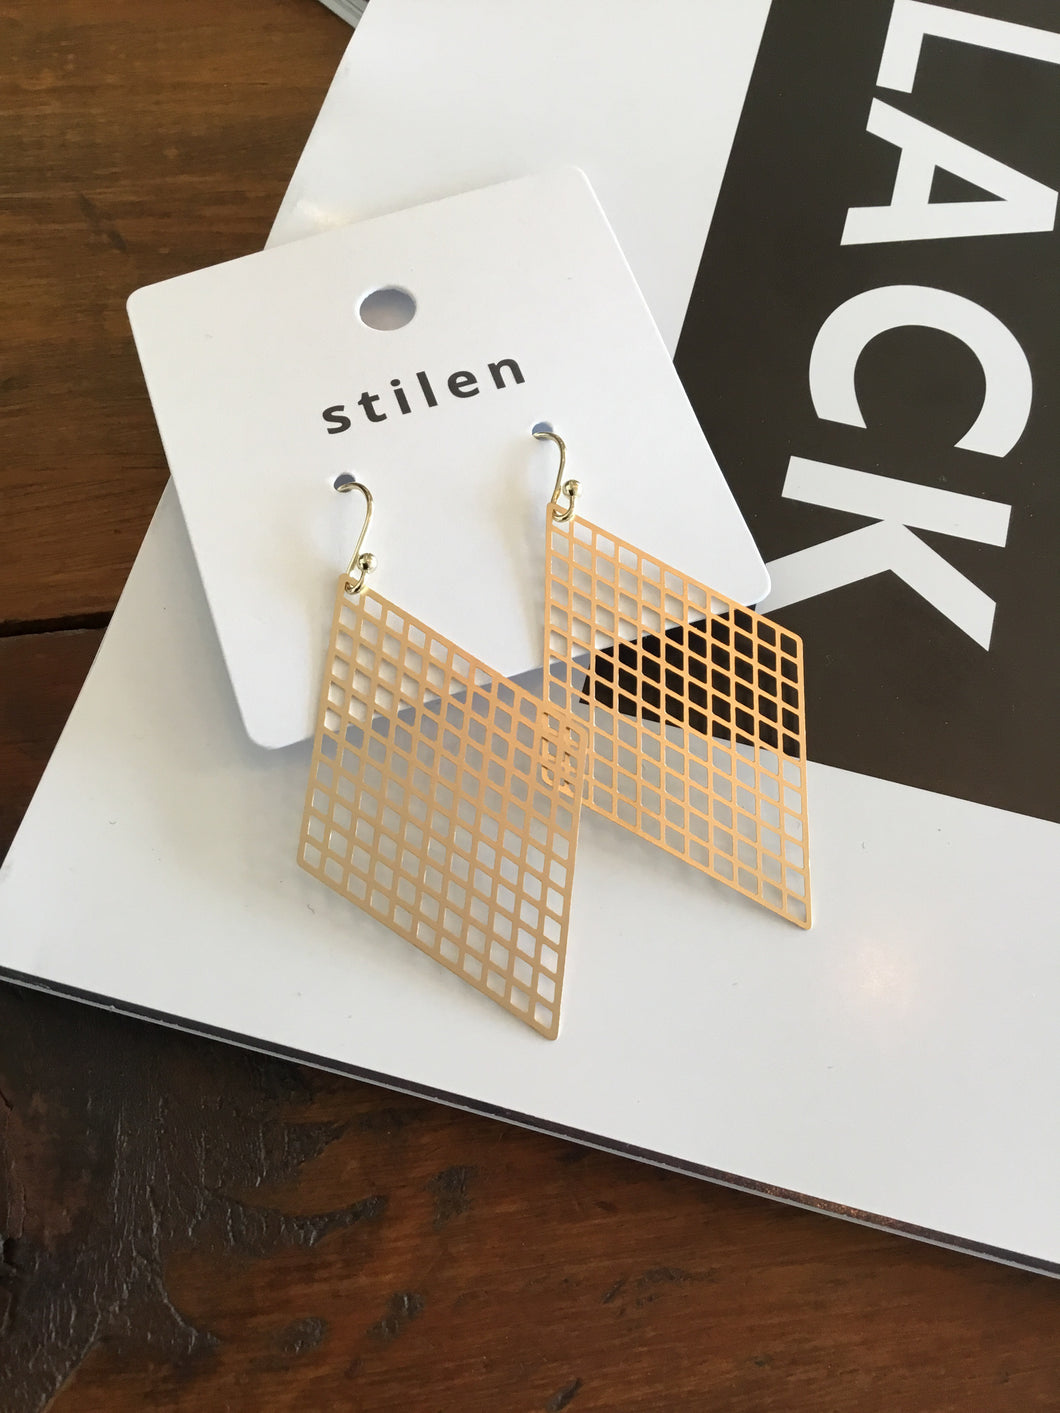 Stilen - Kite Earrings